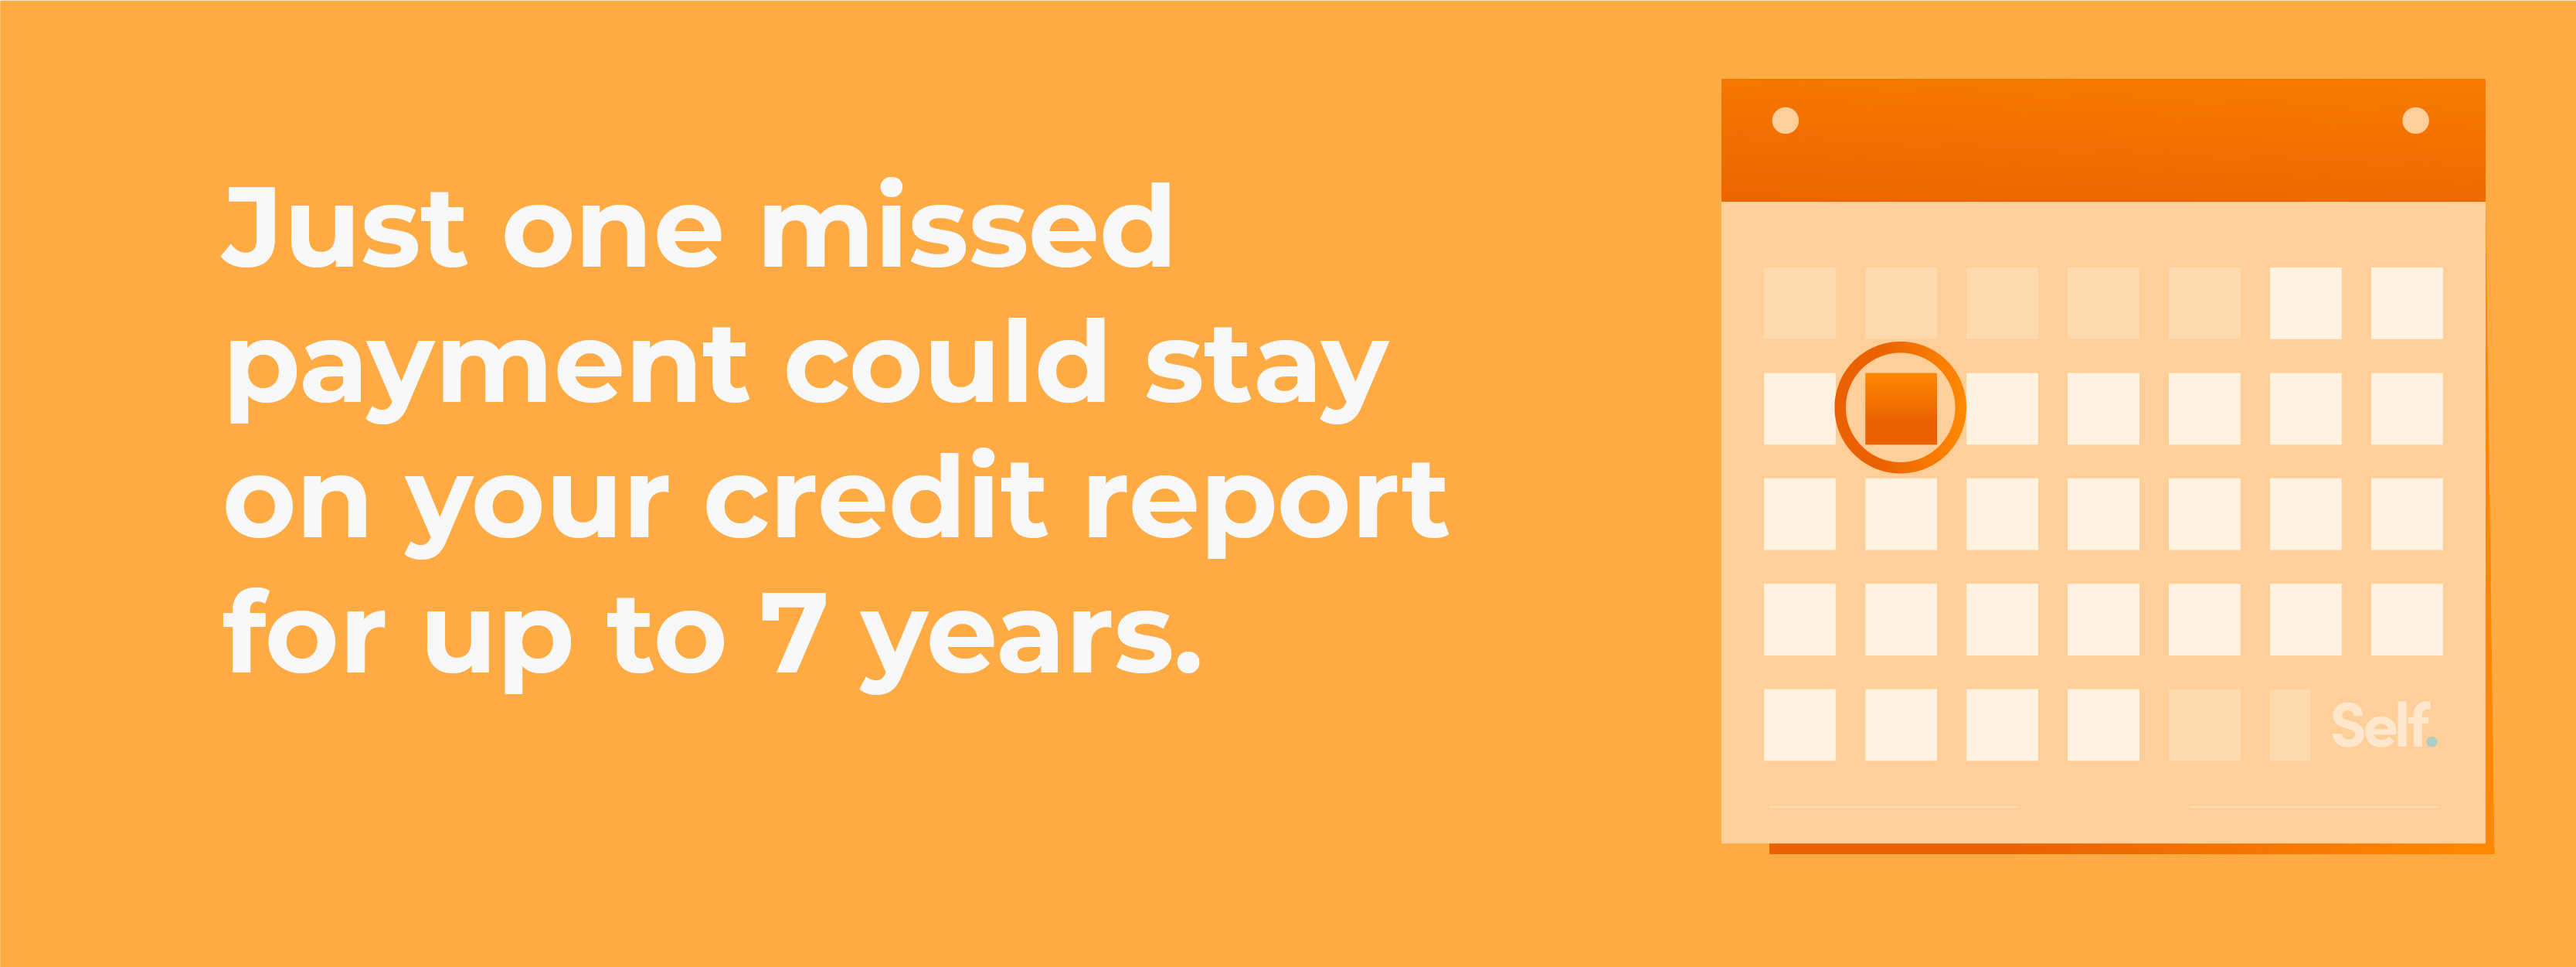 One missed payment can stay on your credit report for 7 years